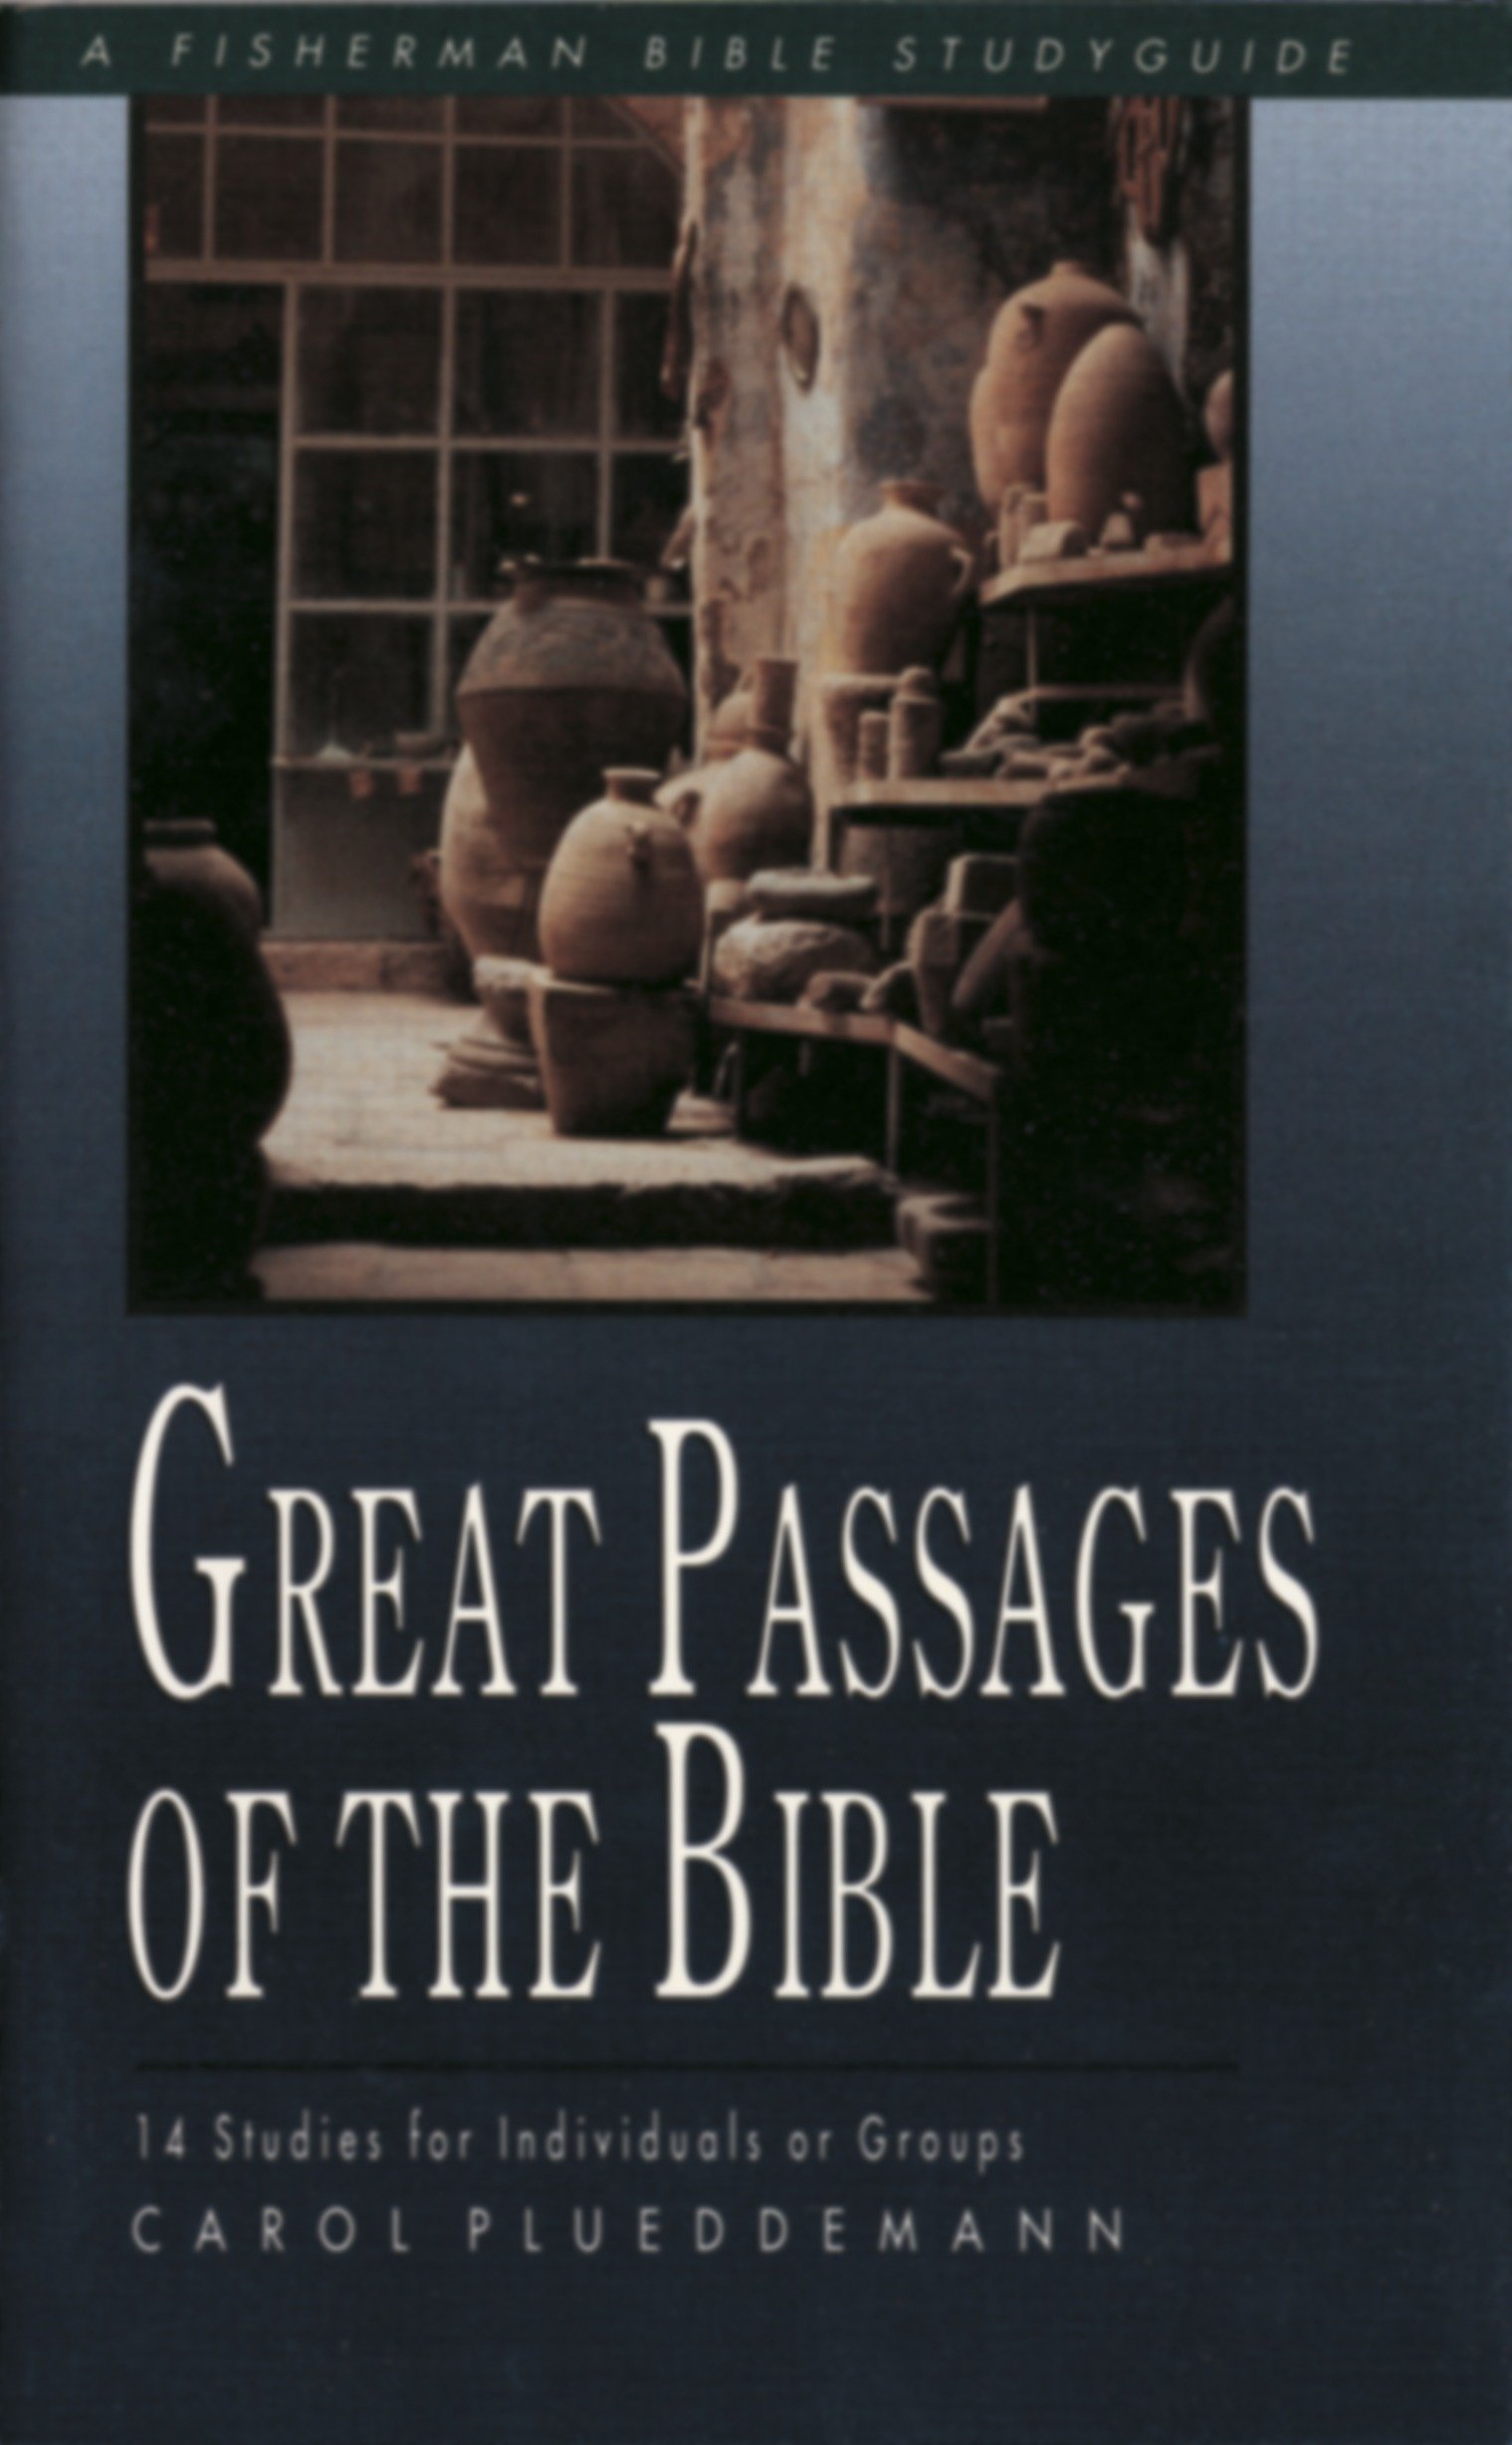 Read Online Great Passages of the Bible: 14 Studies for Individuals or Groups (Fisherman Bible Studyguide Series) pdf